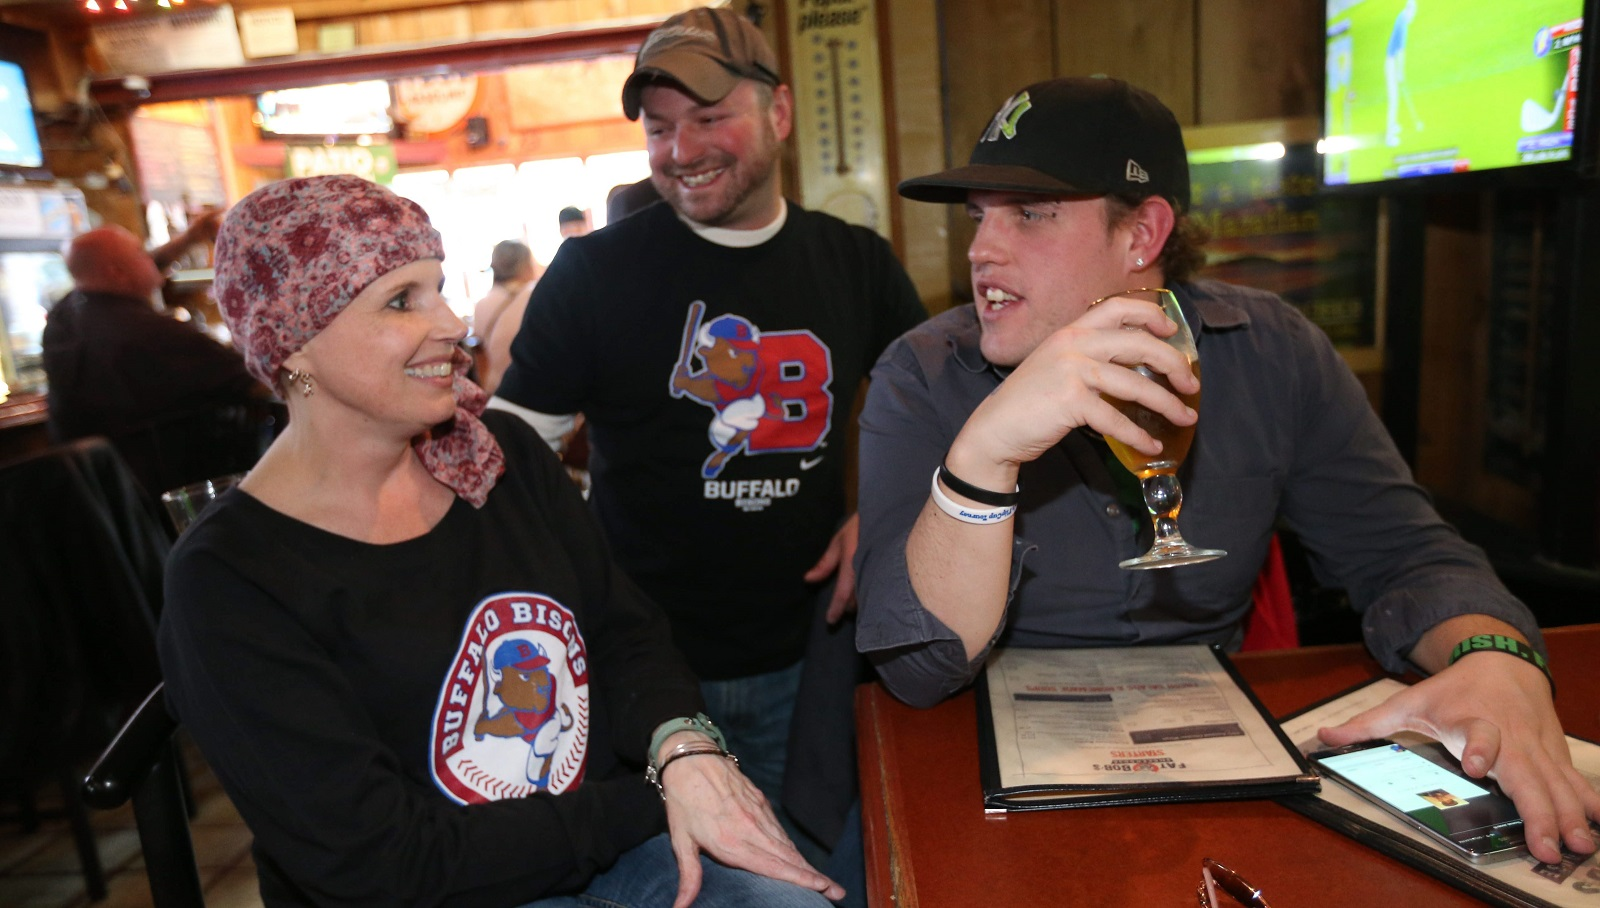 Hanging out from left are Jodi Lawrie of Fredonia, her boyfriend Dennis Bowquin of Fredonia and her nephew, Joe Lawrie of Corfu. (Sharon Cantillon/Buffalo News)